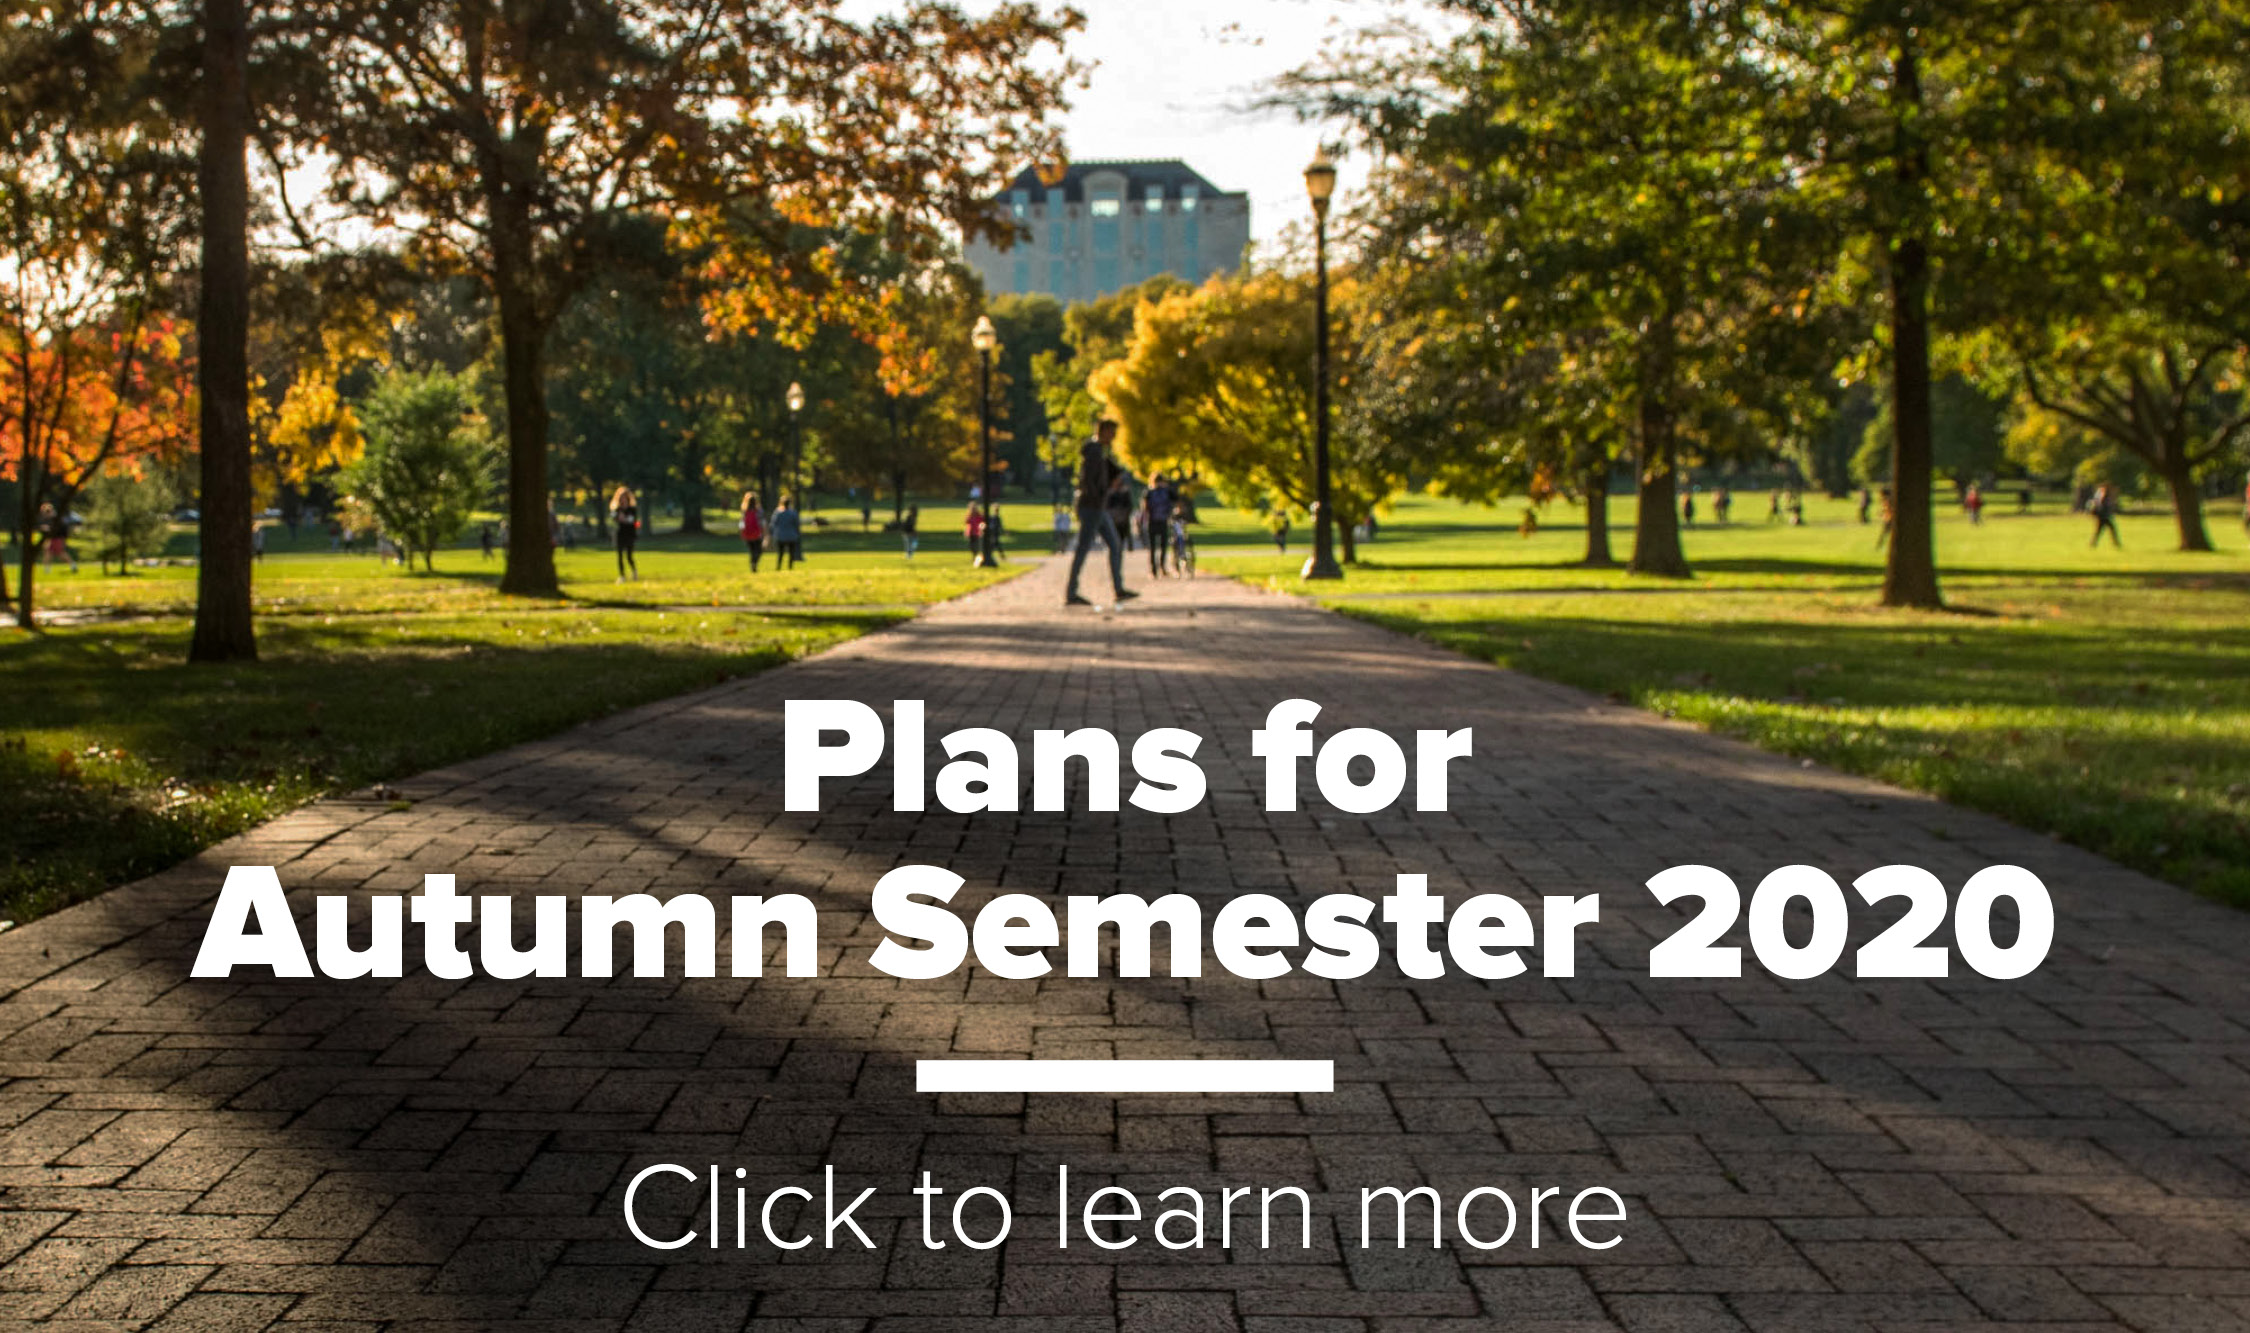 Plans for Autumn Semester 2020